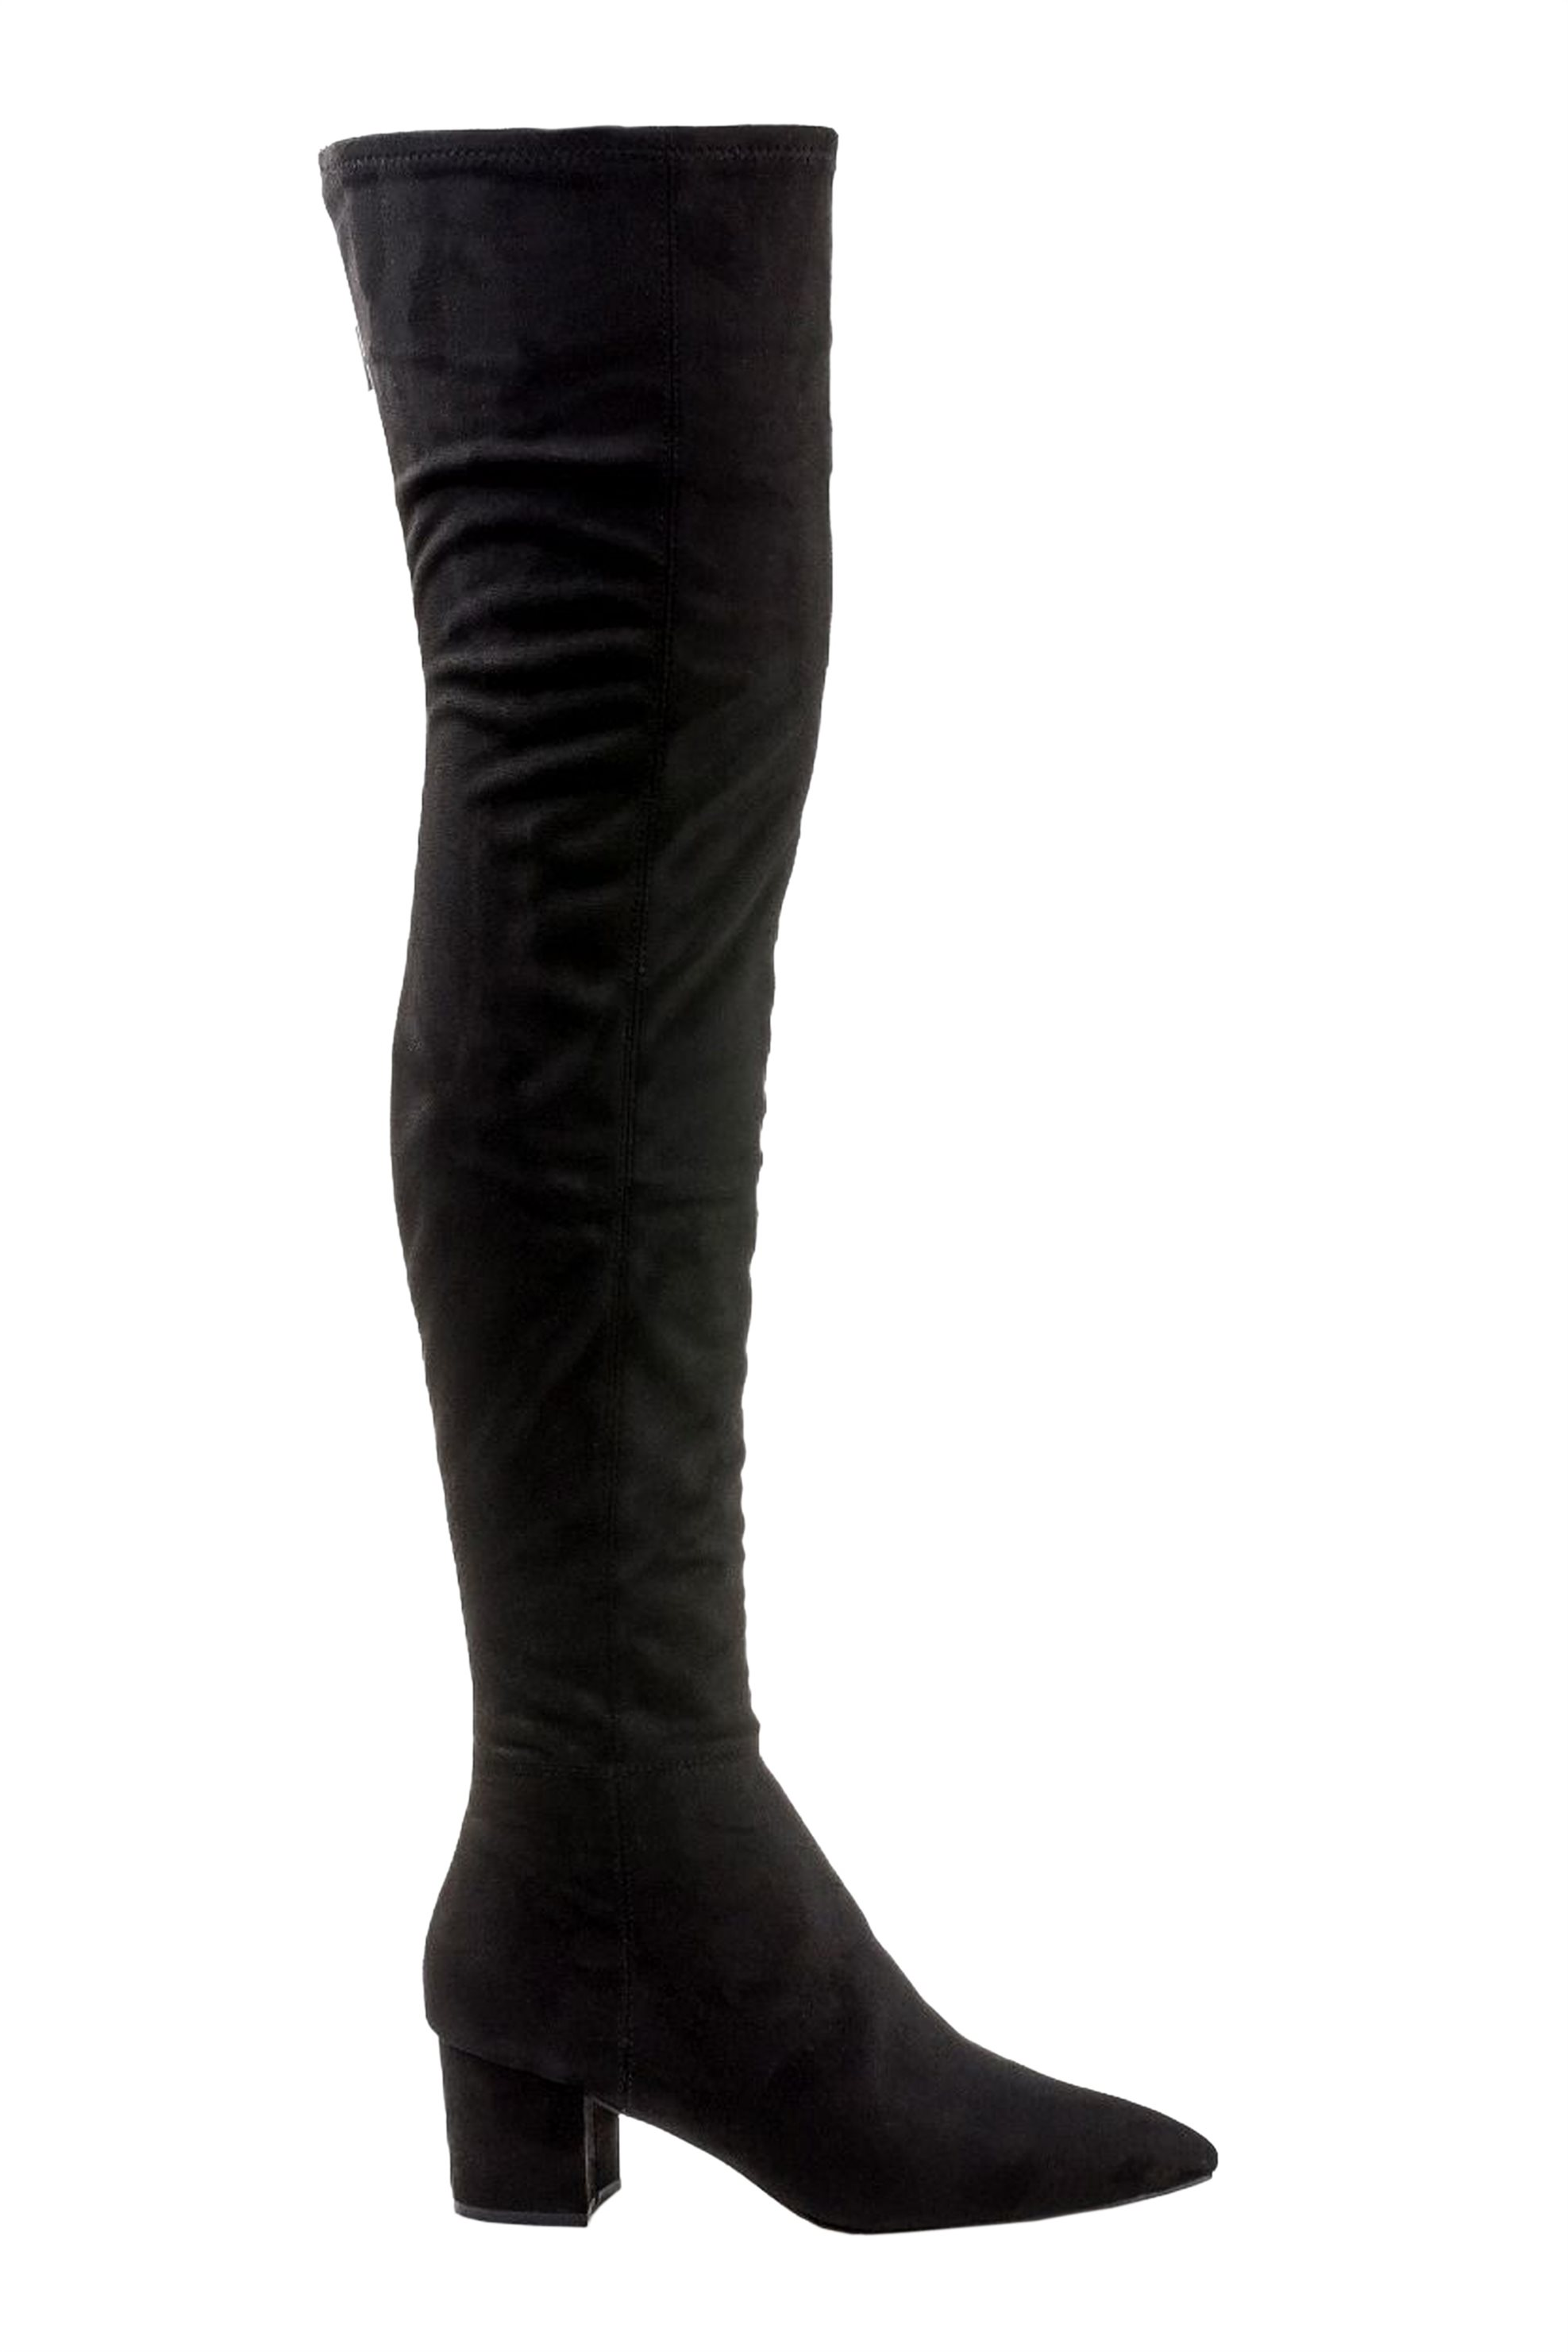 Steve Madden γυναικεία μποτά over the knee BOLTED - 218744-BOLTED - Μαύρο γυναικα   παπουτσια   μπότες   πάνω από το γόνατο